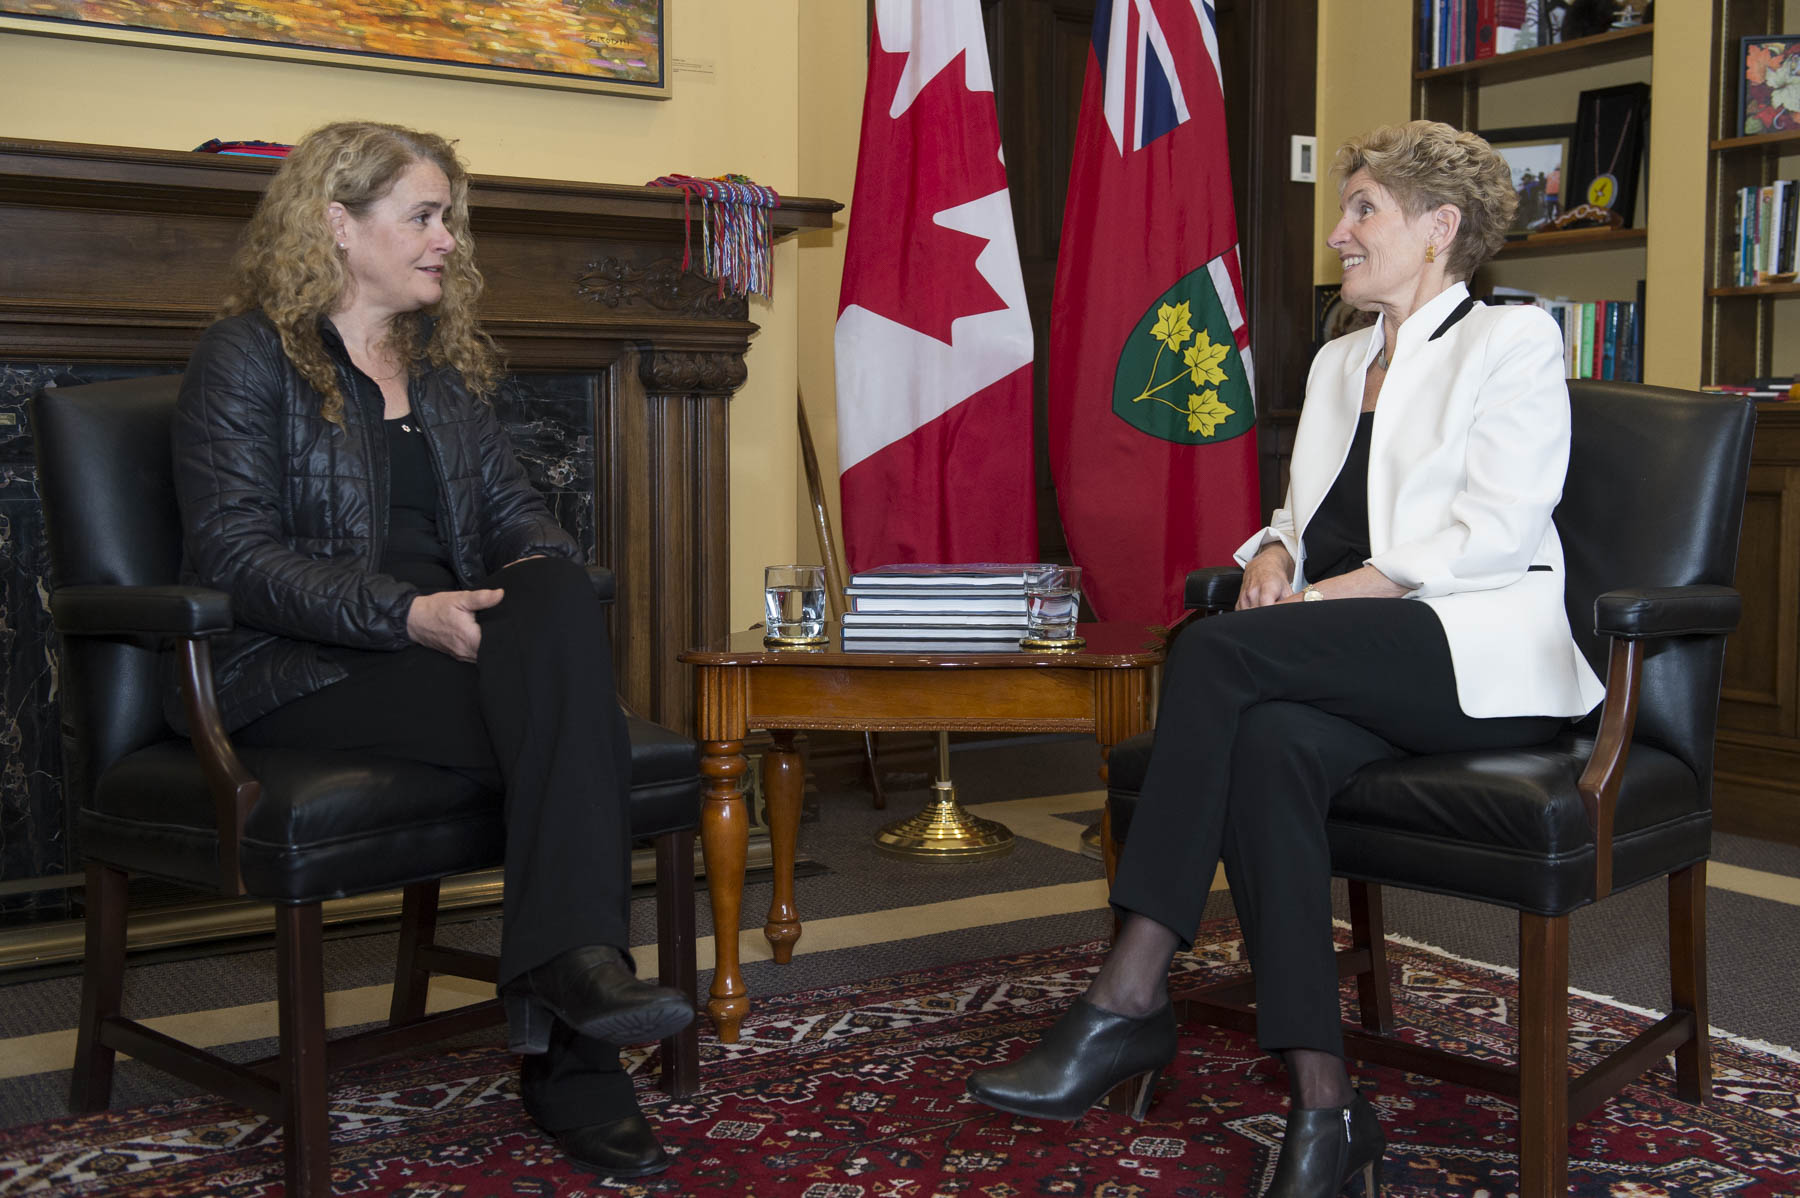 Next, Her Excellency met with the Honourable Kathleen Wynne, Premier of Ontario.